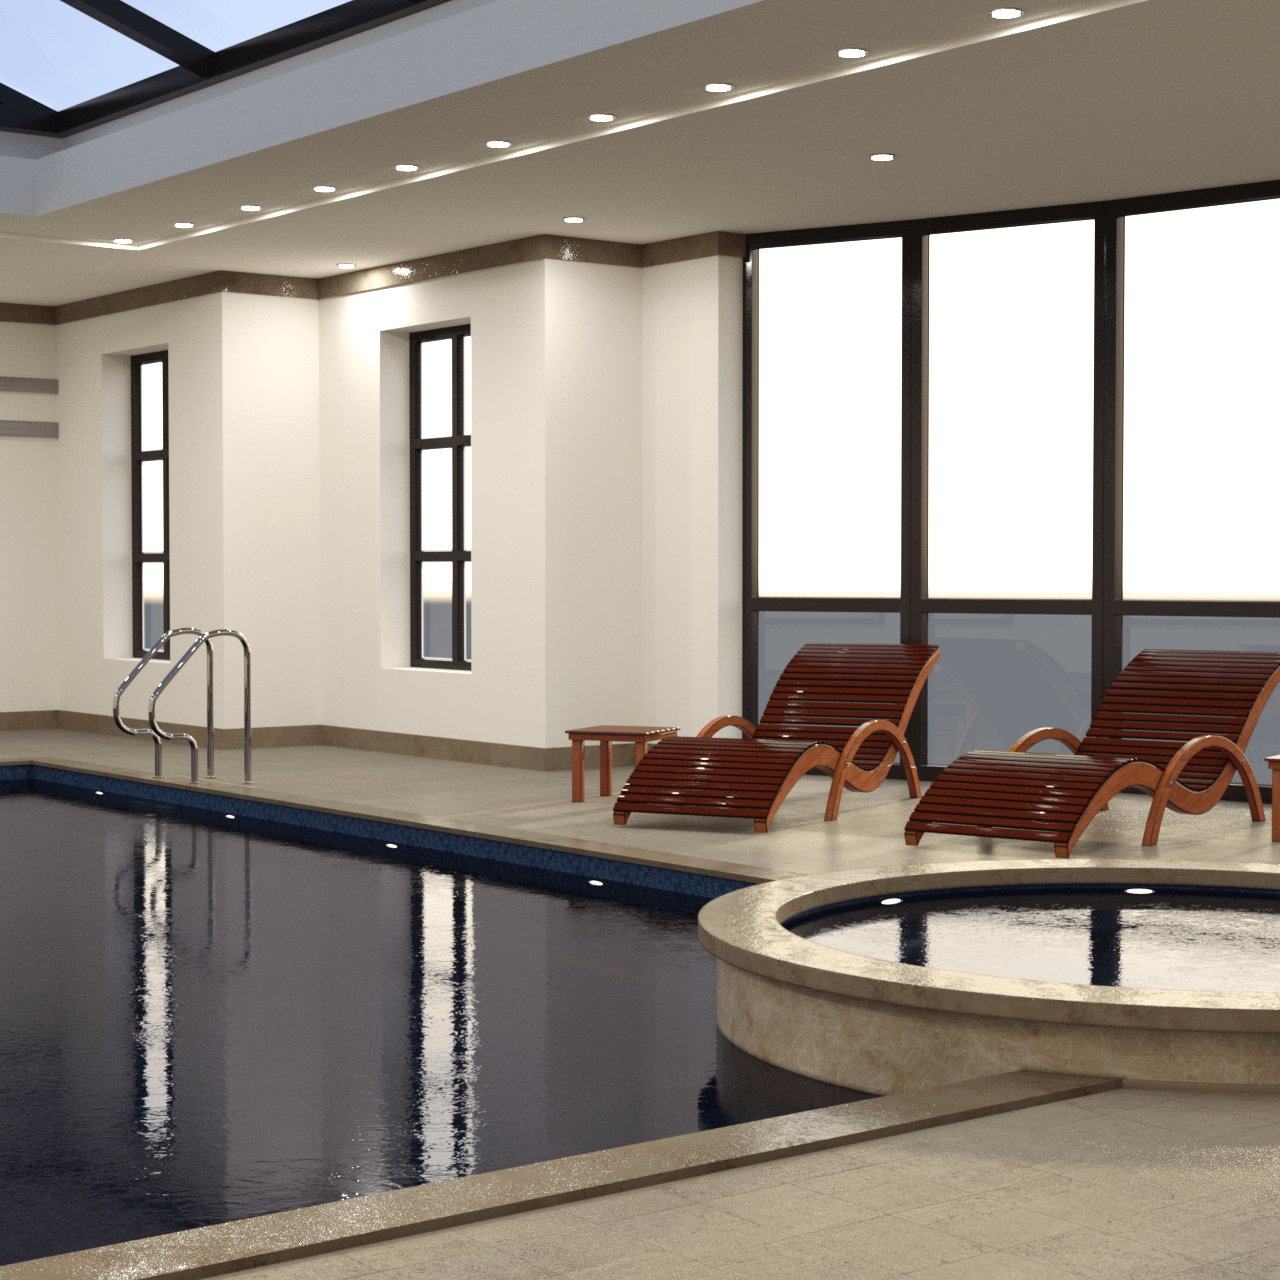 Rendering of a pool with jacuzzi 3d model